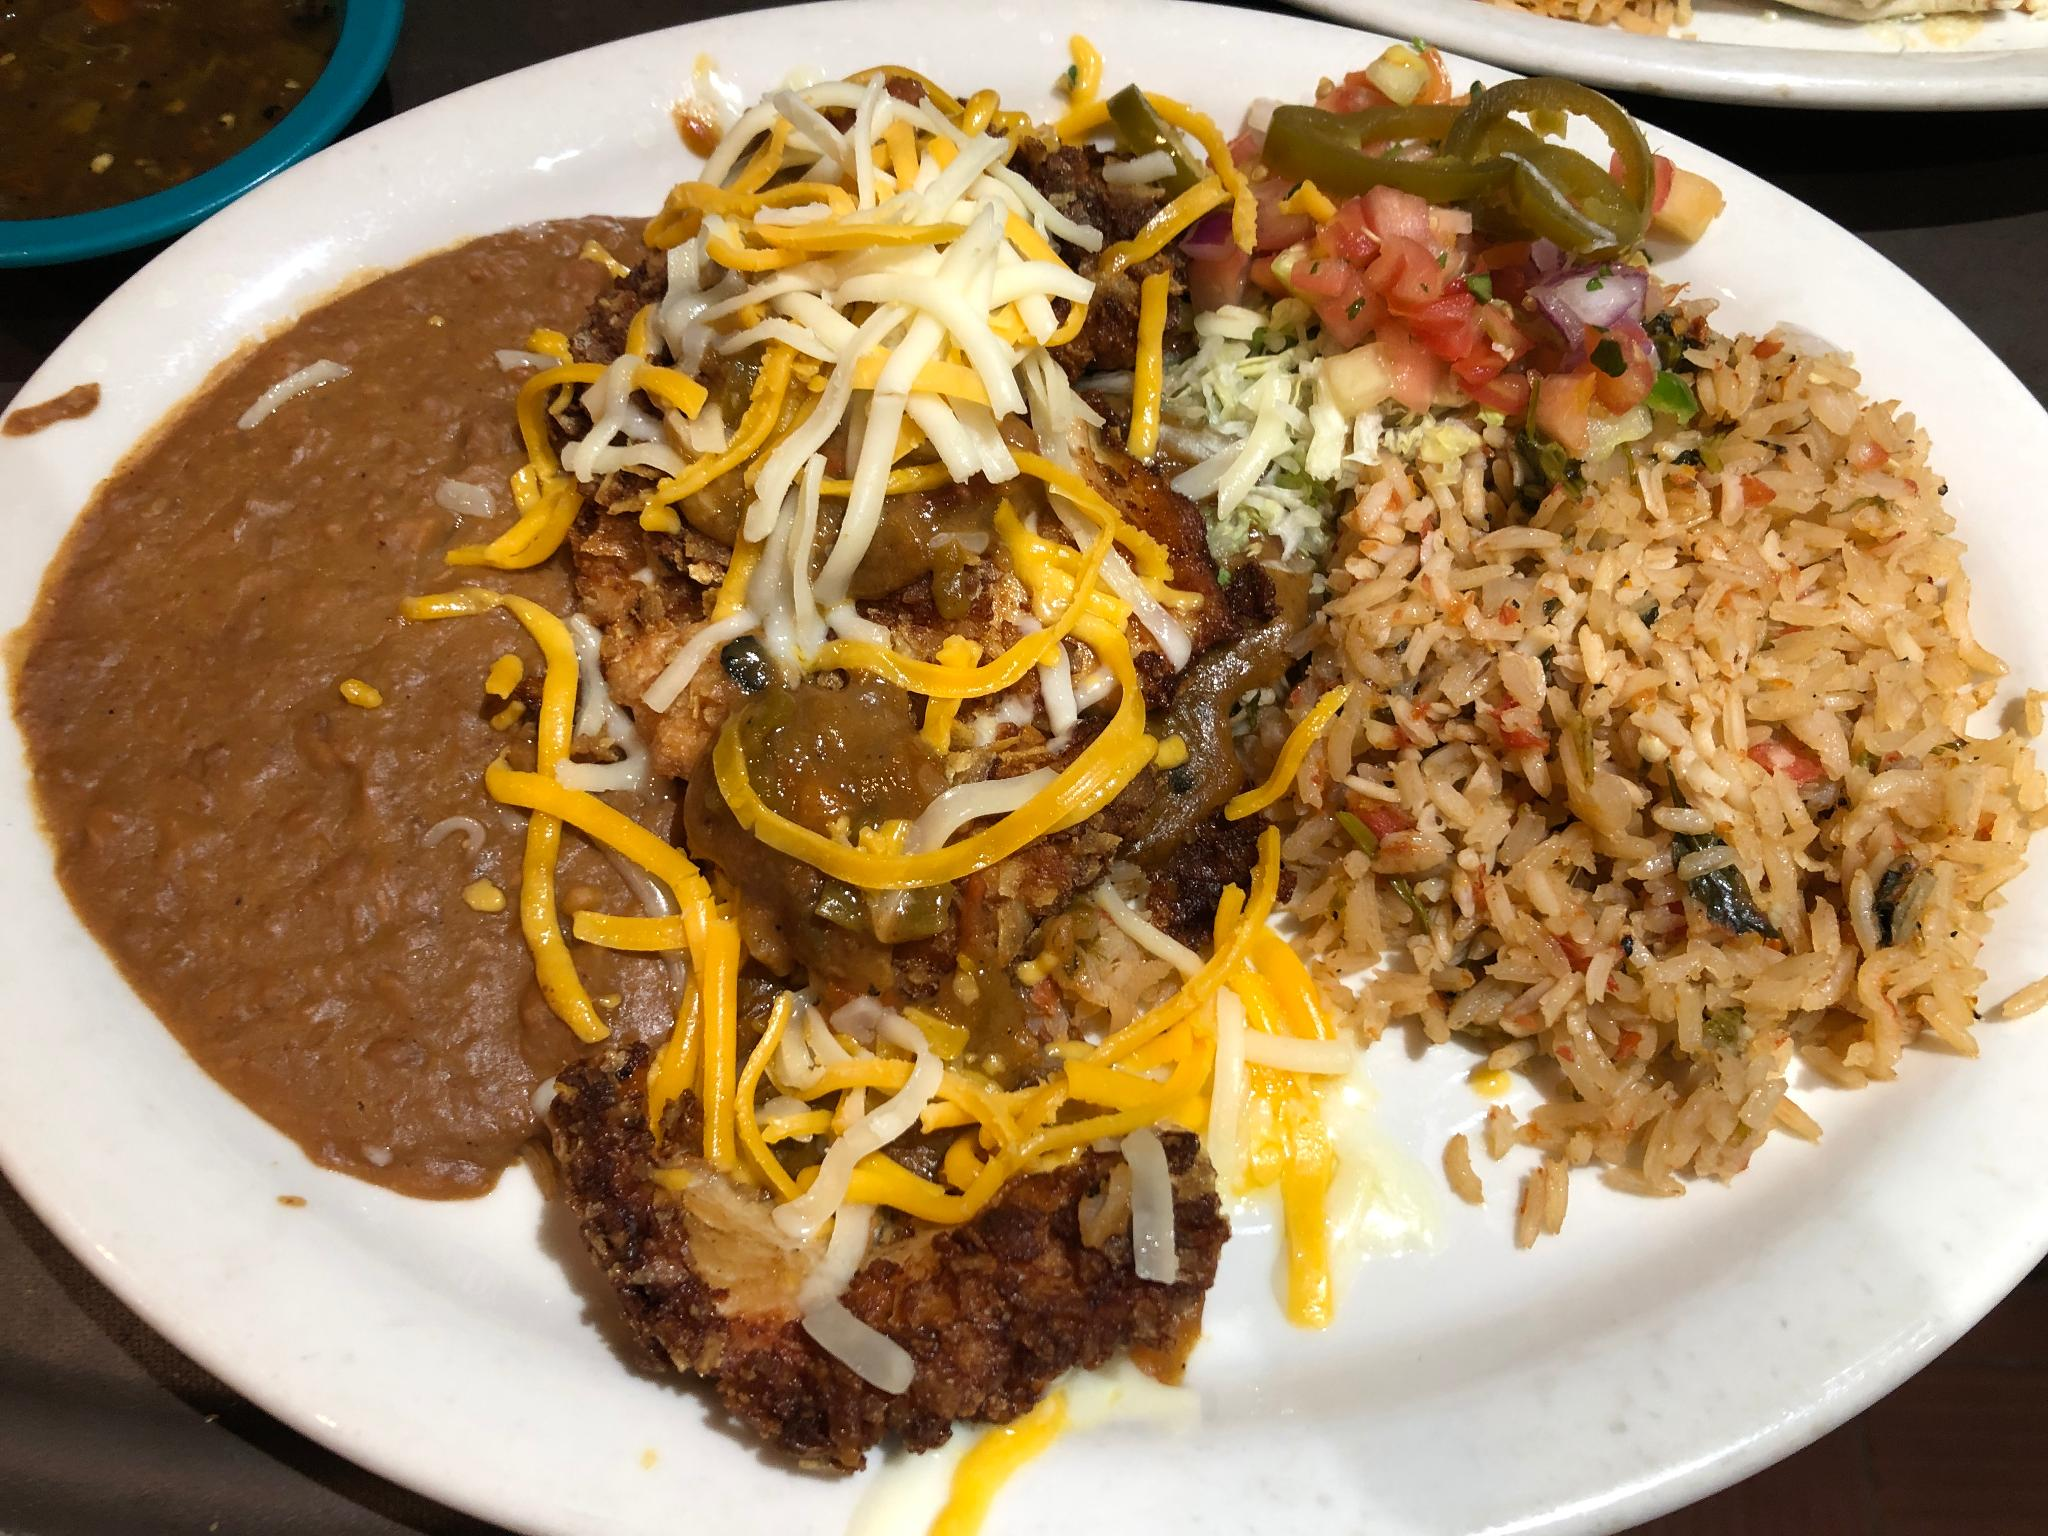 A Tex-Mex dish from Chuy's